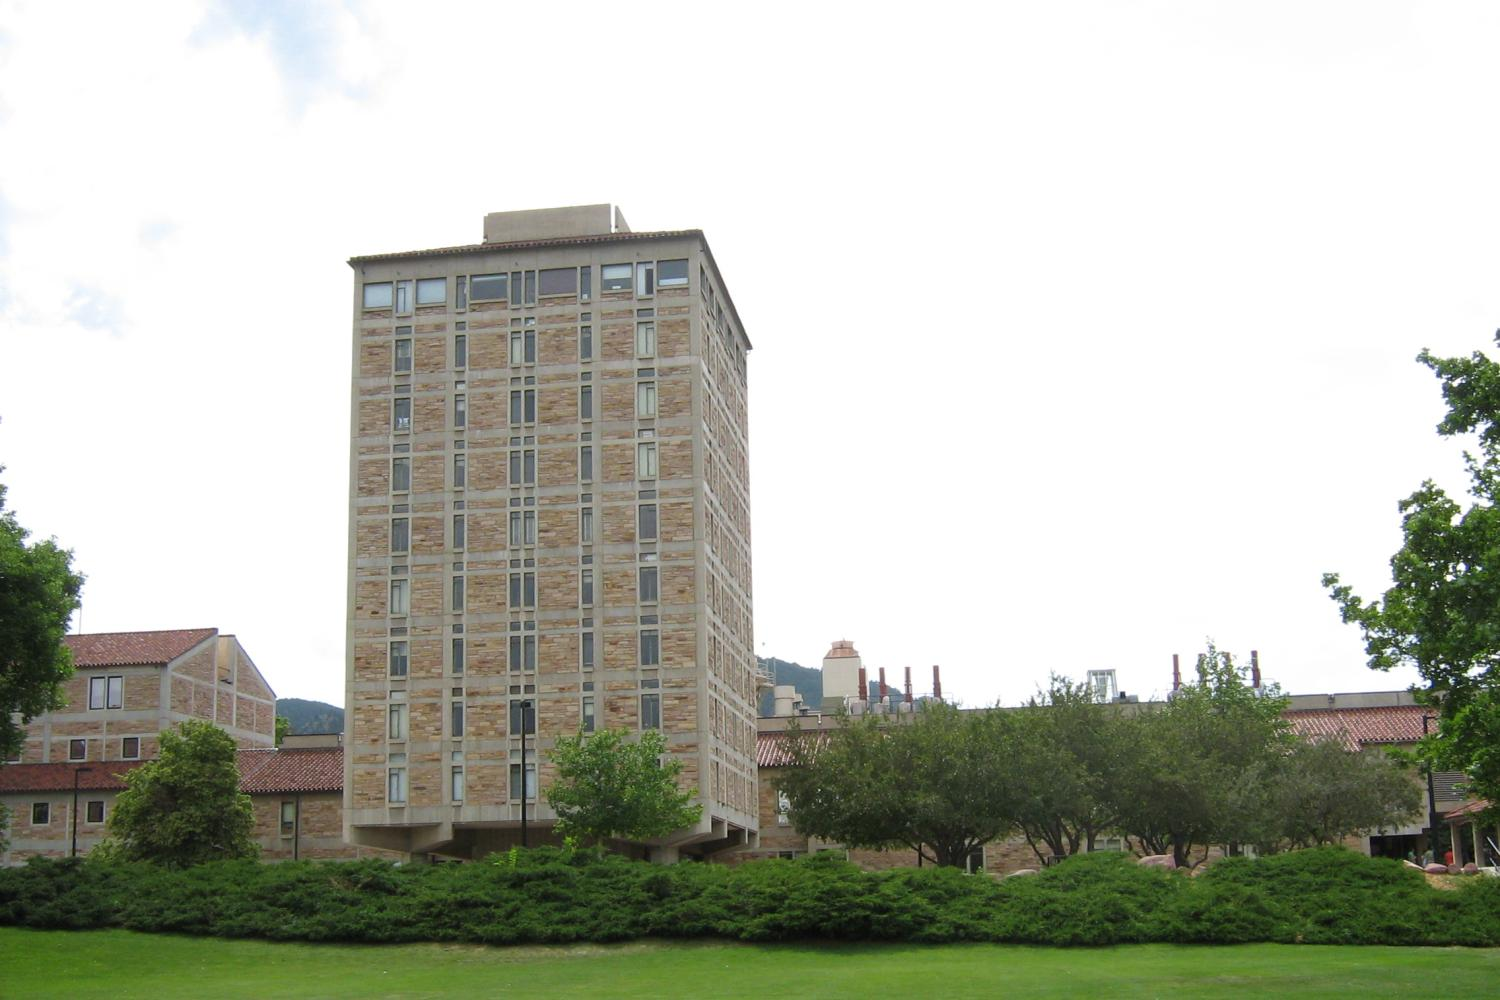 Building photo of joint physics institute of the University of Colorado at Boulder and the National Institute of Standards and Technology